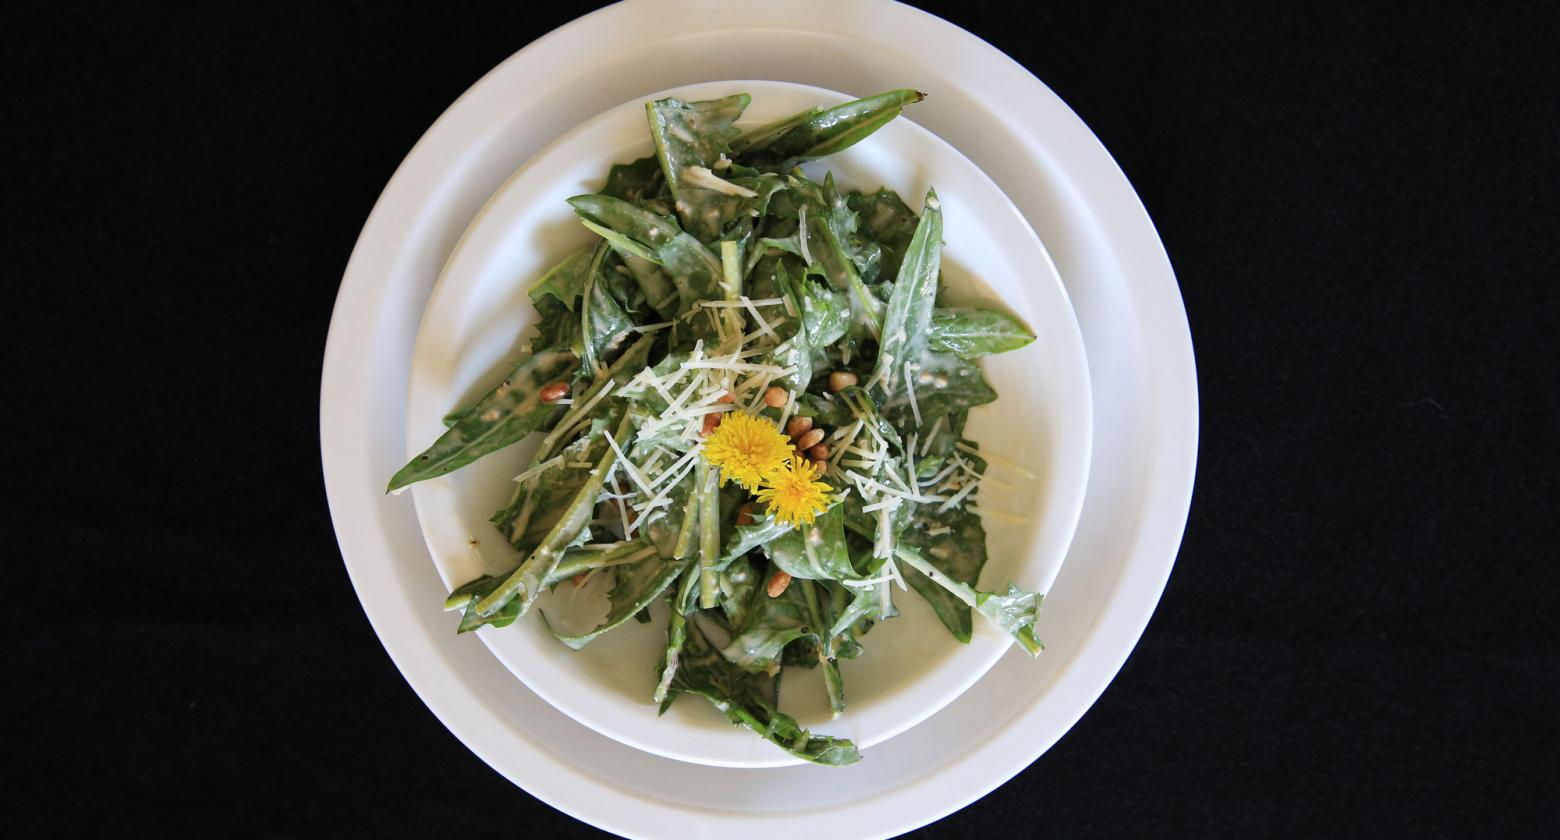 [image] Dandelion Greens with Roasted Garlic Dressing — A Nature All Around Us Recipe